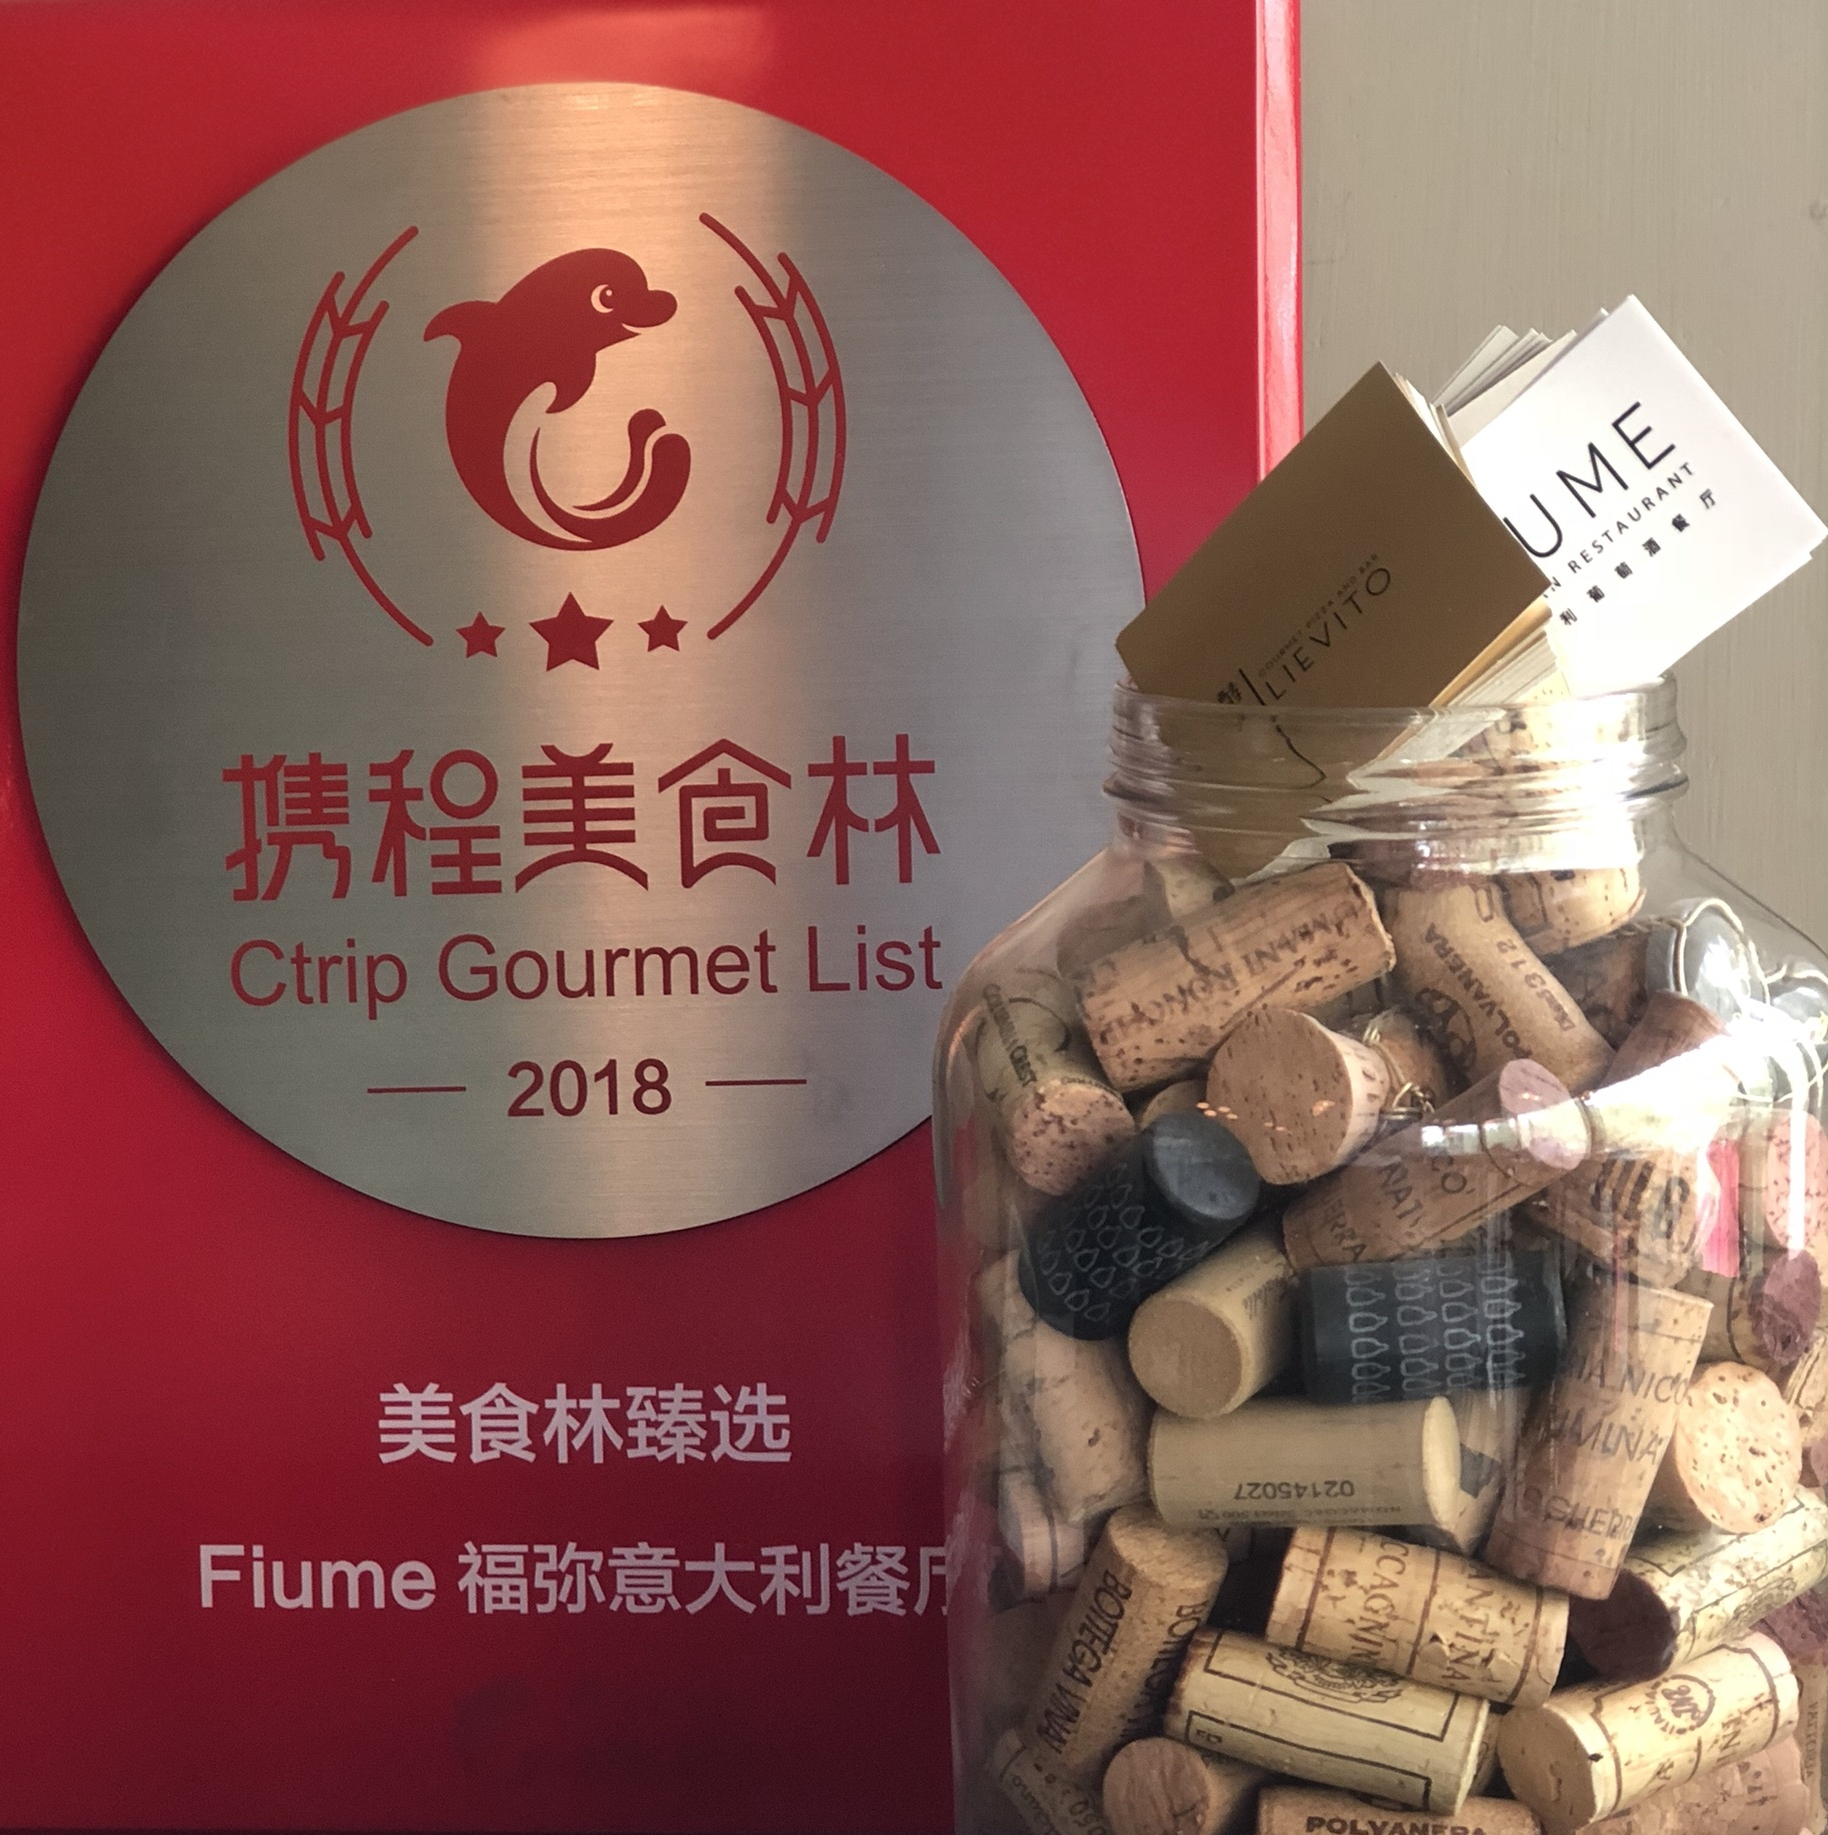 Ctrip Gourmet List 2018 Fiume.jpeg